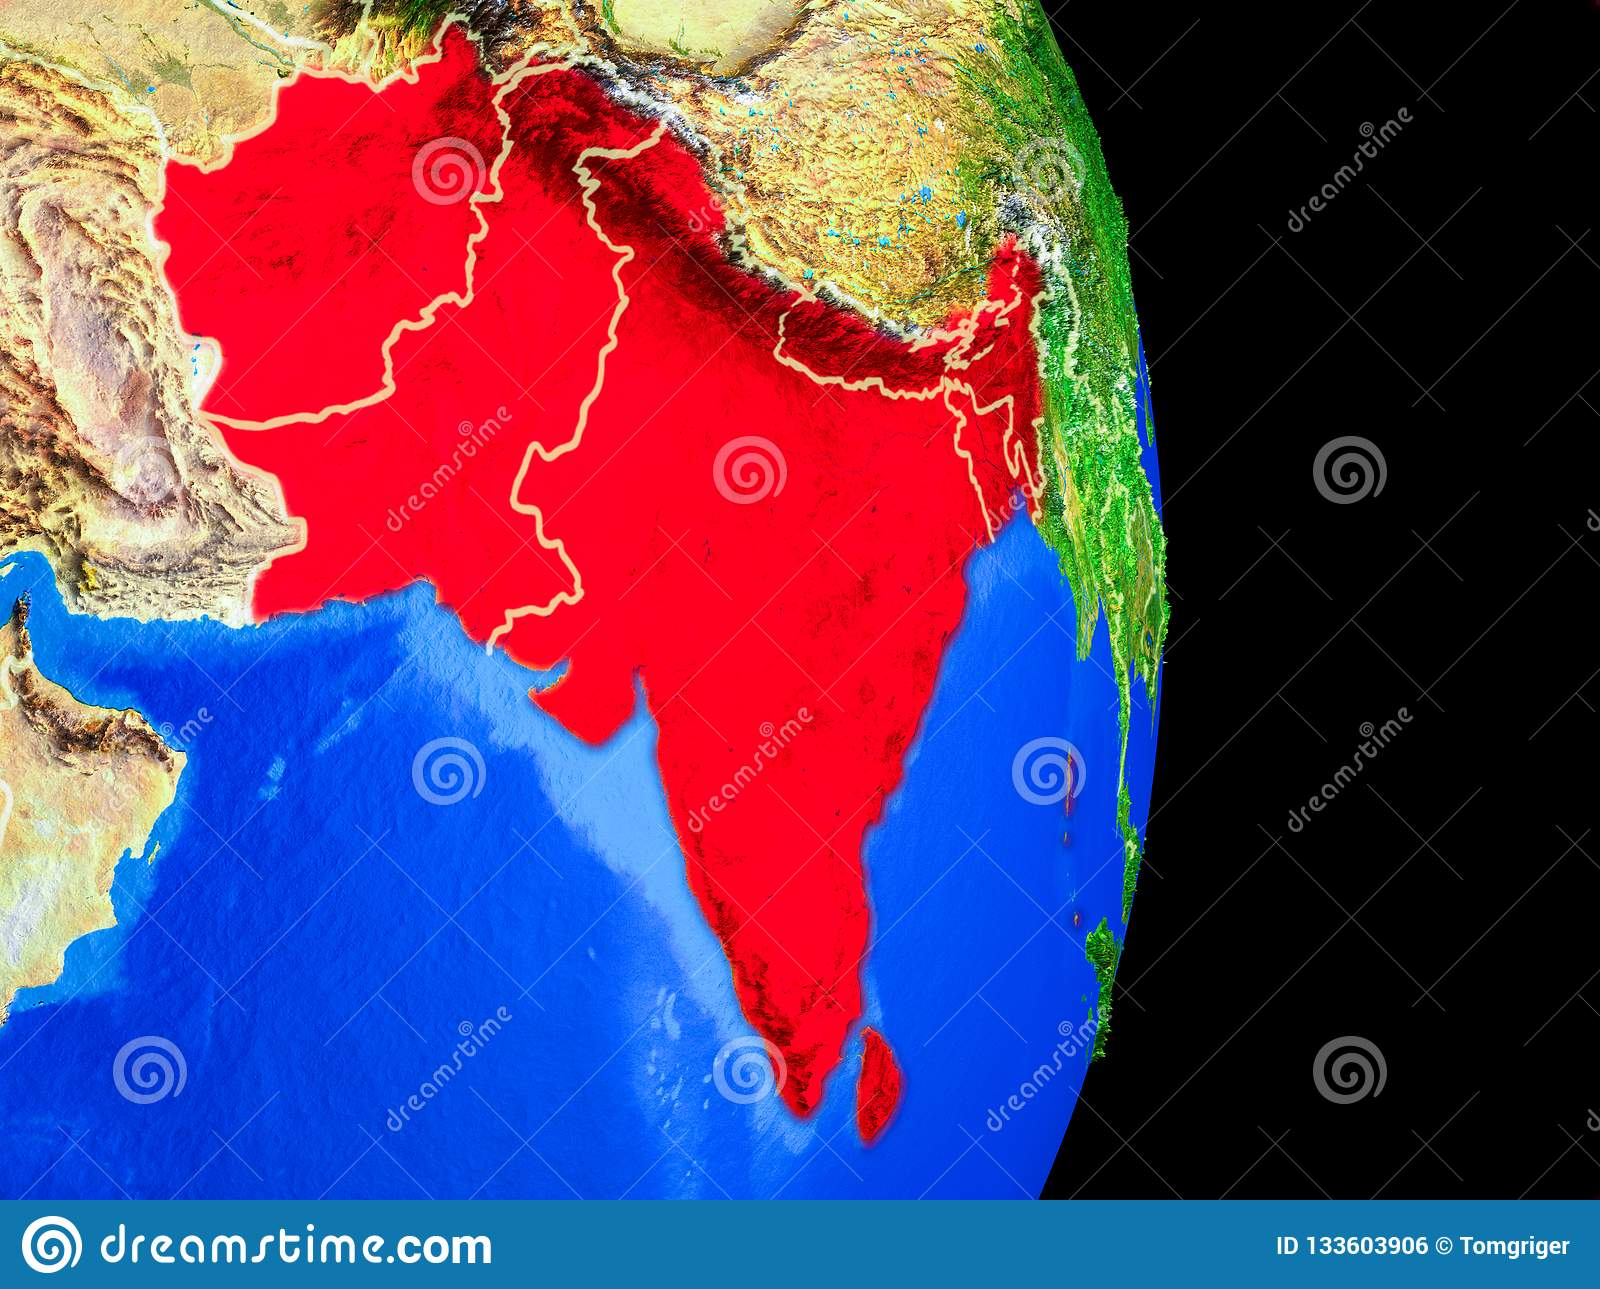 South Asia On Globe From Space Stock Illustration ... on map of world globe, map of north america globe, map of new zealand globe, map of middle east globe,